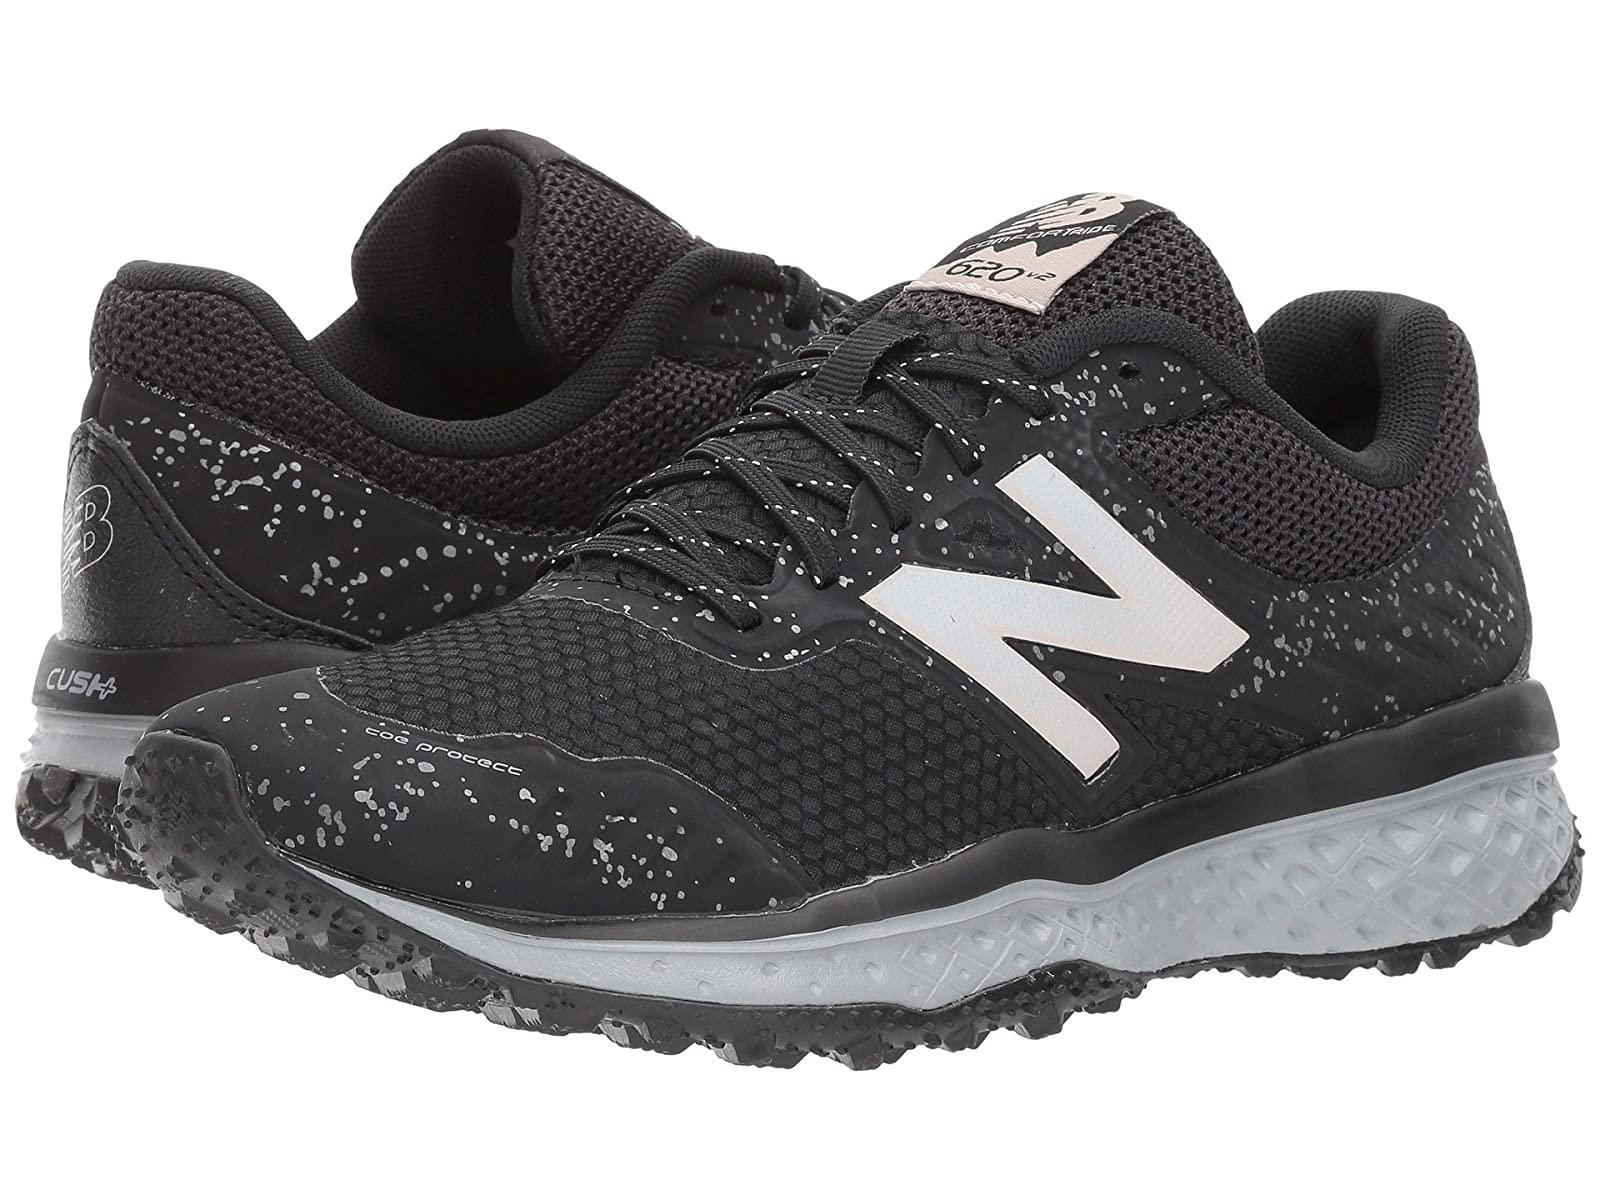 New Balance T620v2Atmospheric grades have affordable shoes